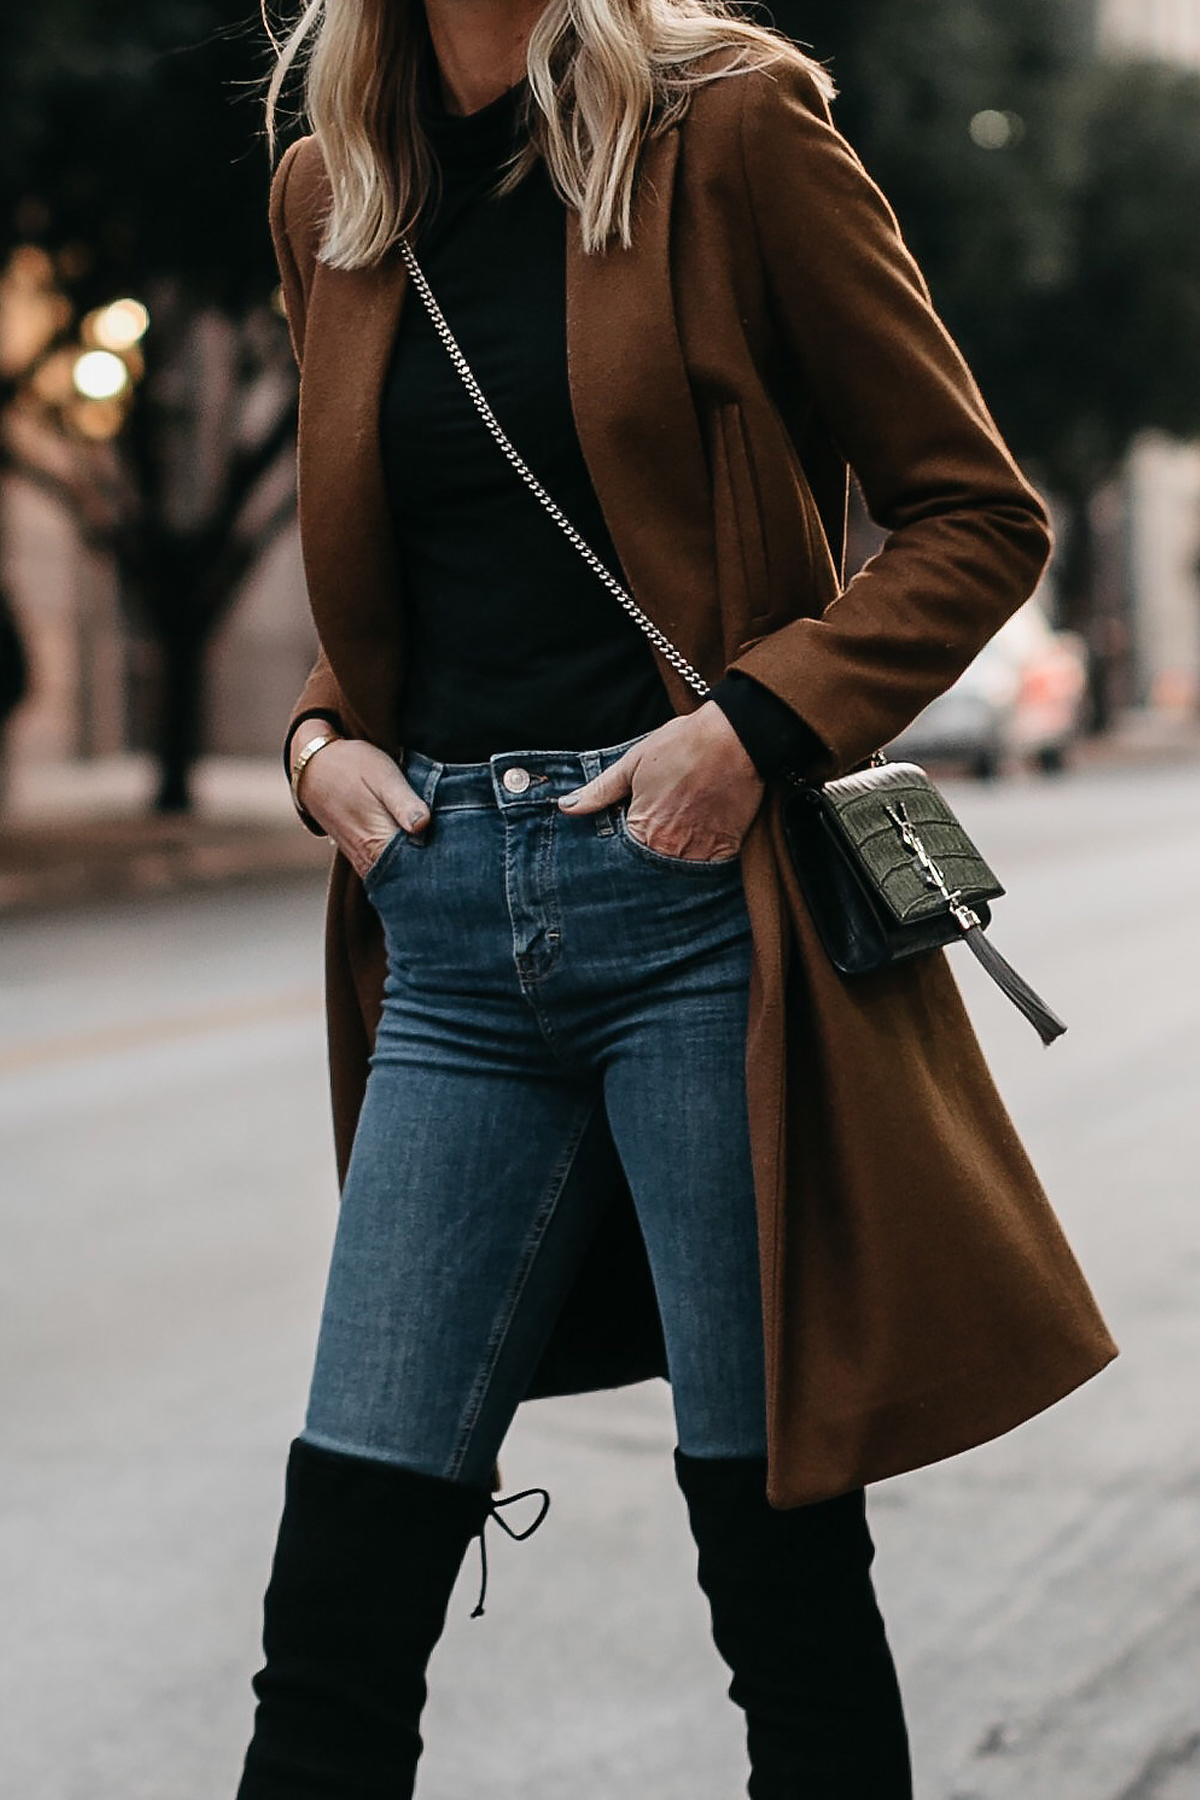 Camel Wool Coat Black Turtleneck Denim Skinny Jeans Saint Laurent Crossbody Fashion Jackson Dallas Blogger Fashion Blogger Street Style